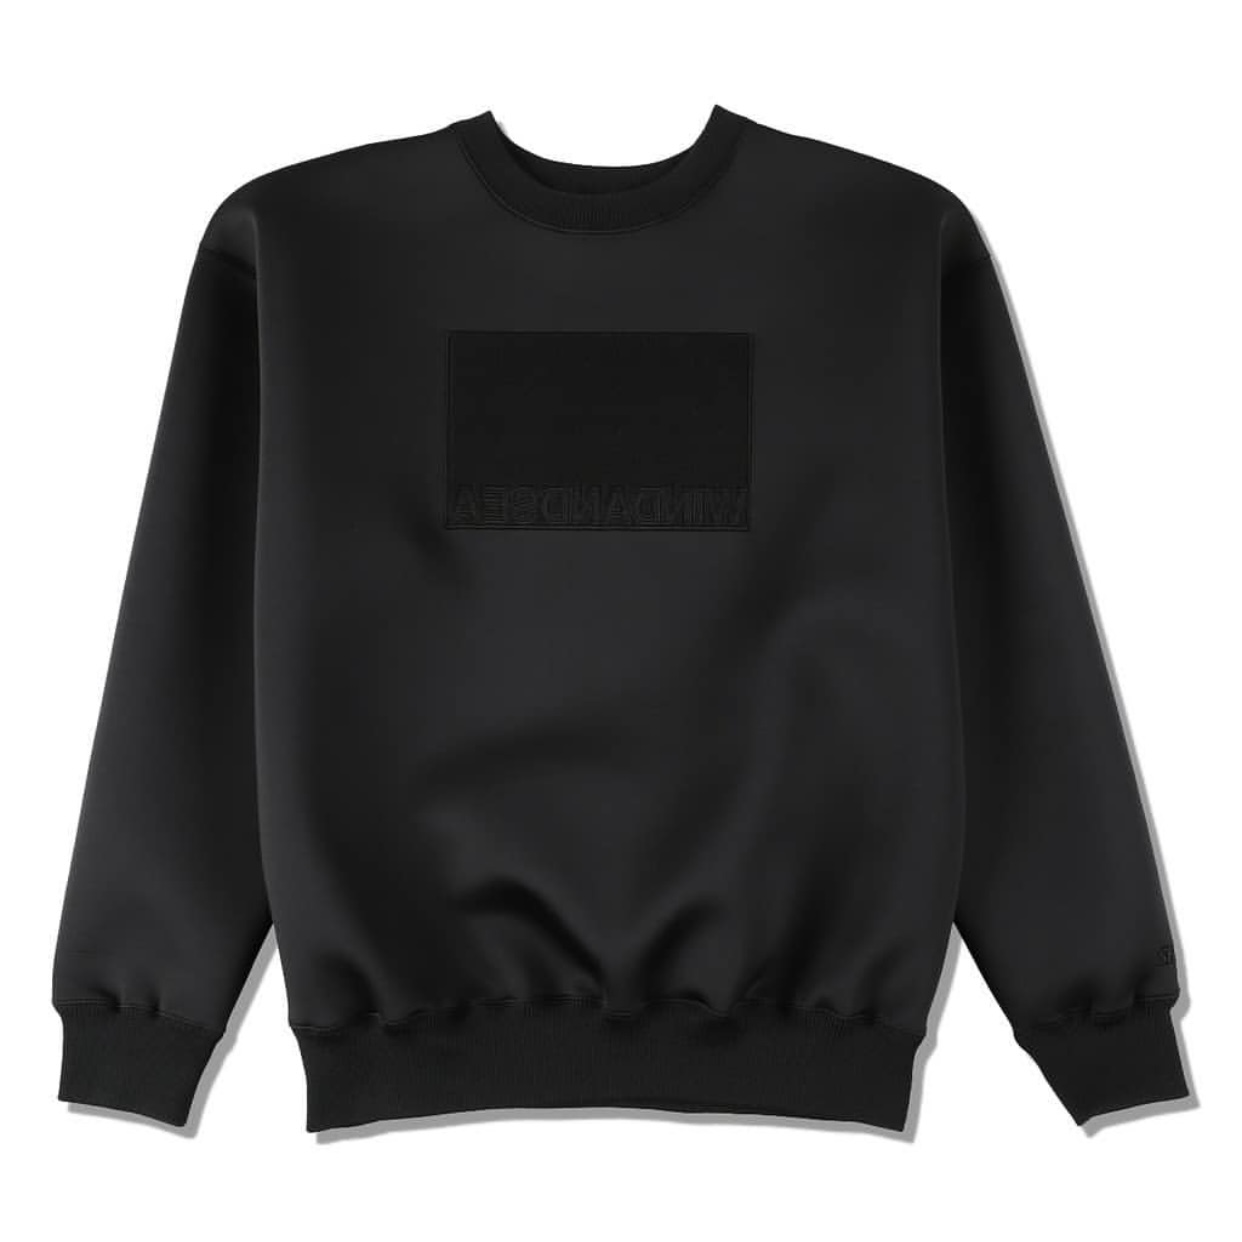 WIND AND SEA 新作スウェット発売 11月21日 WDS BOX CBK SWEAT TOPS BLACK WDS-20A-TPS-04-